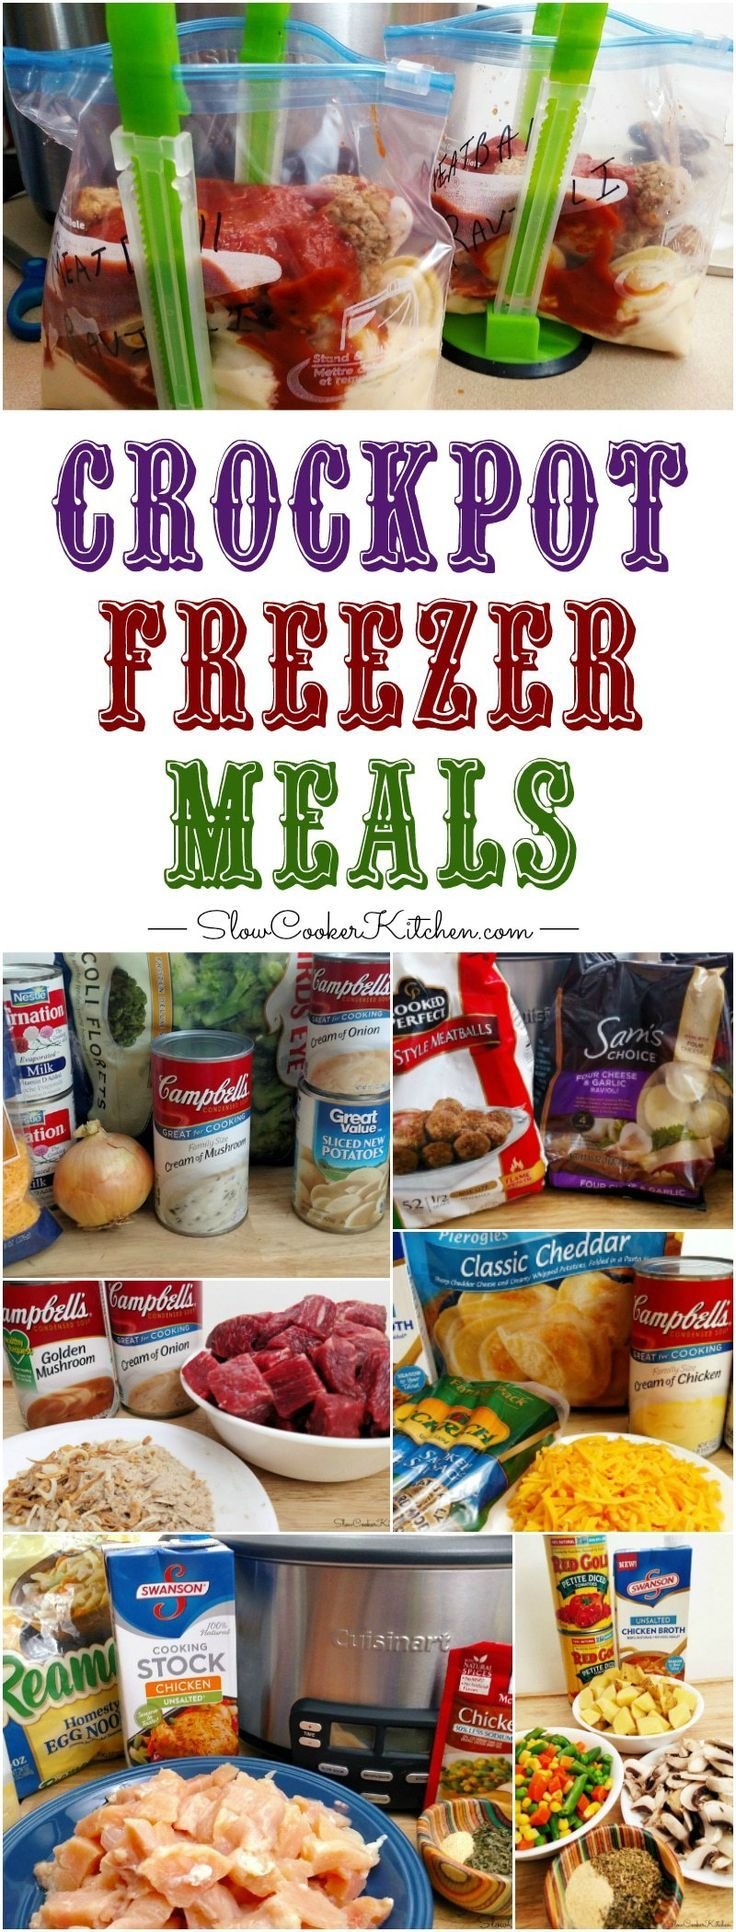 Crock Pot Freezer Meals (yum food crock pot)